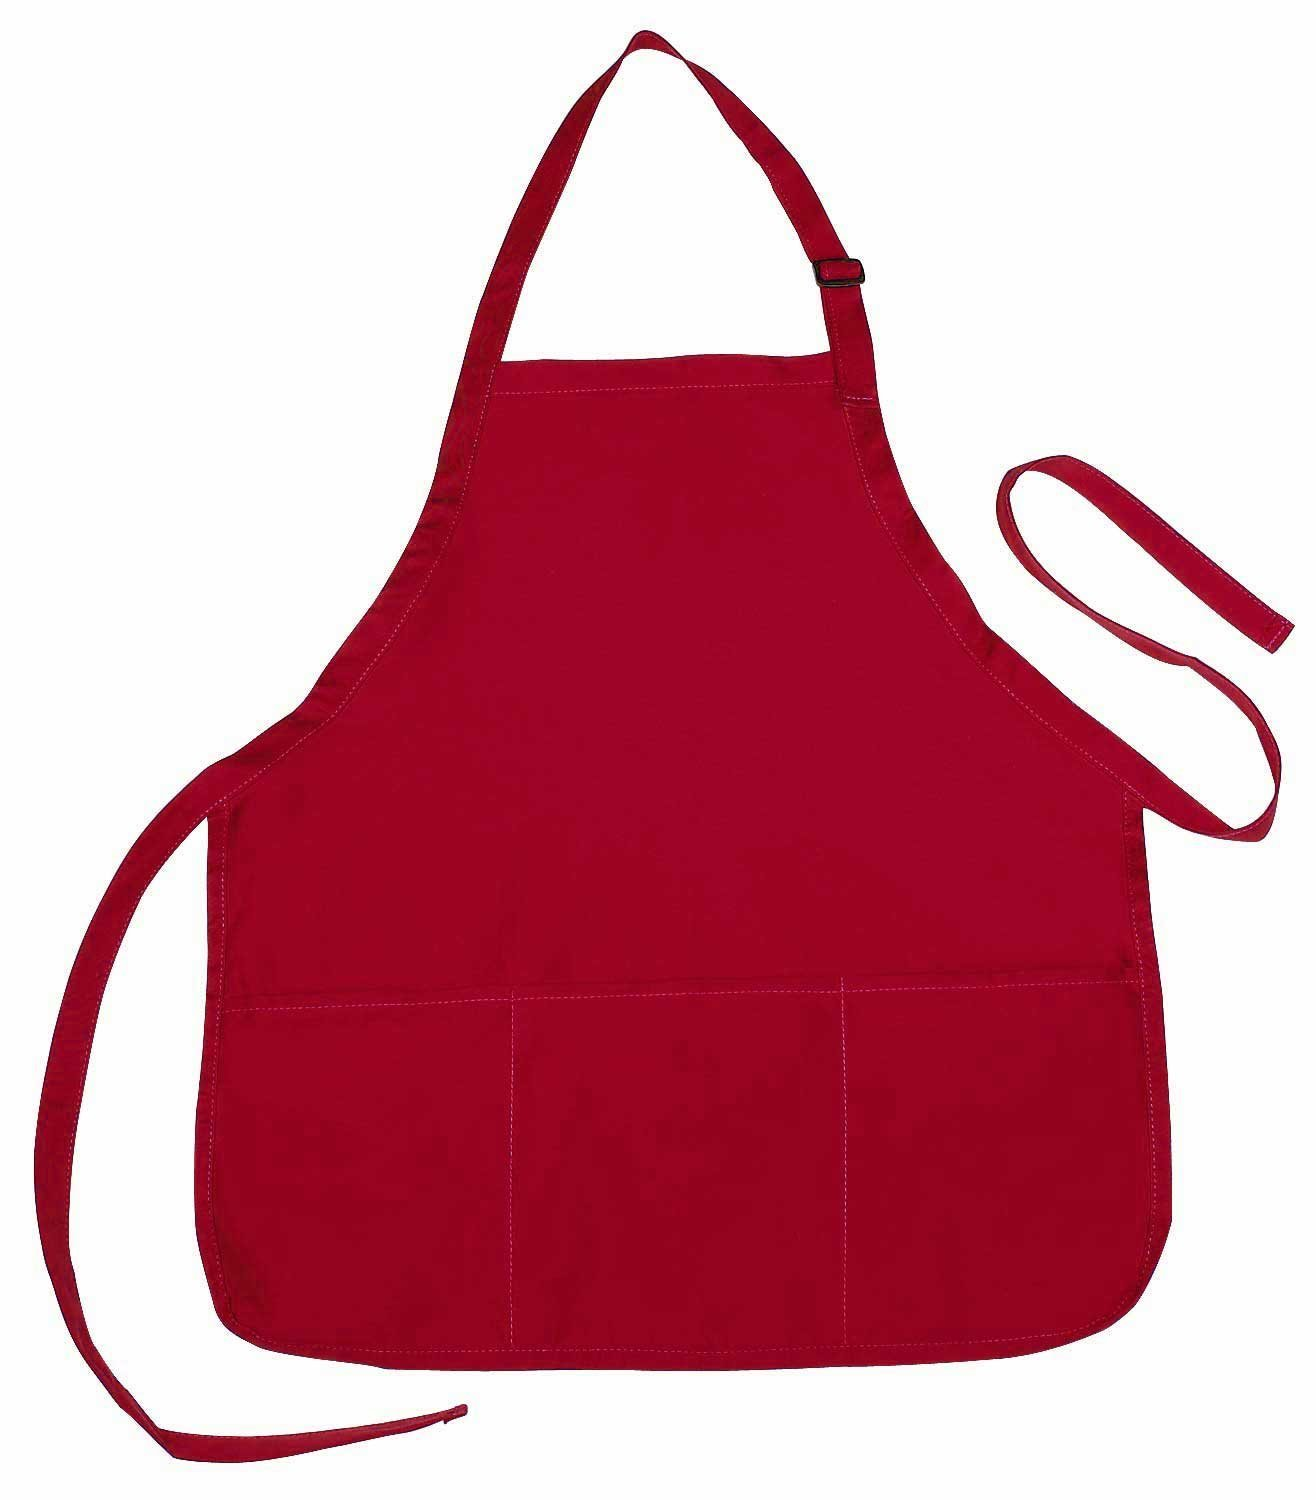 Apron Commercial Restaurant Home Bib Spun Poly Cotton Kitchen Aprons (3 Pockets) Waitress, Waiter - Black, Green, Royal, Navy, Green, Red, White, 22'' x 24'' (50, Red)